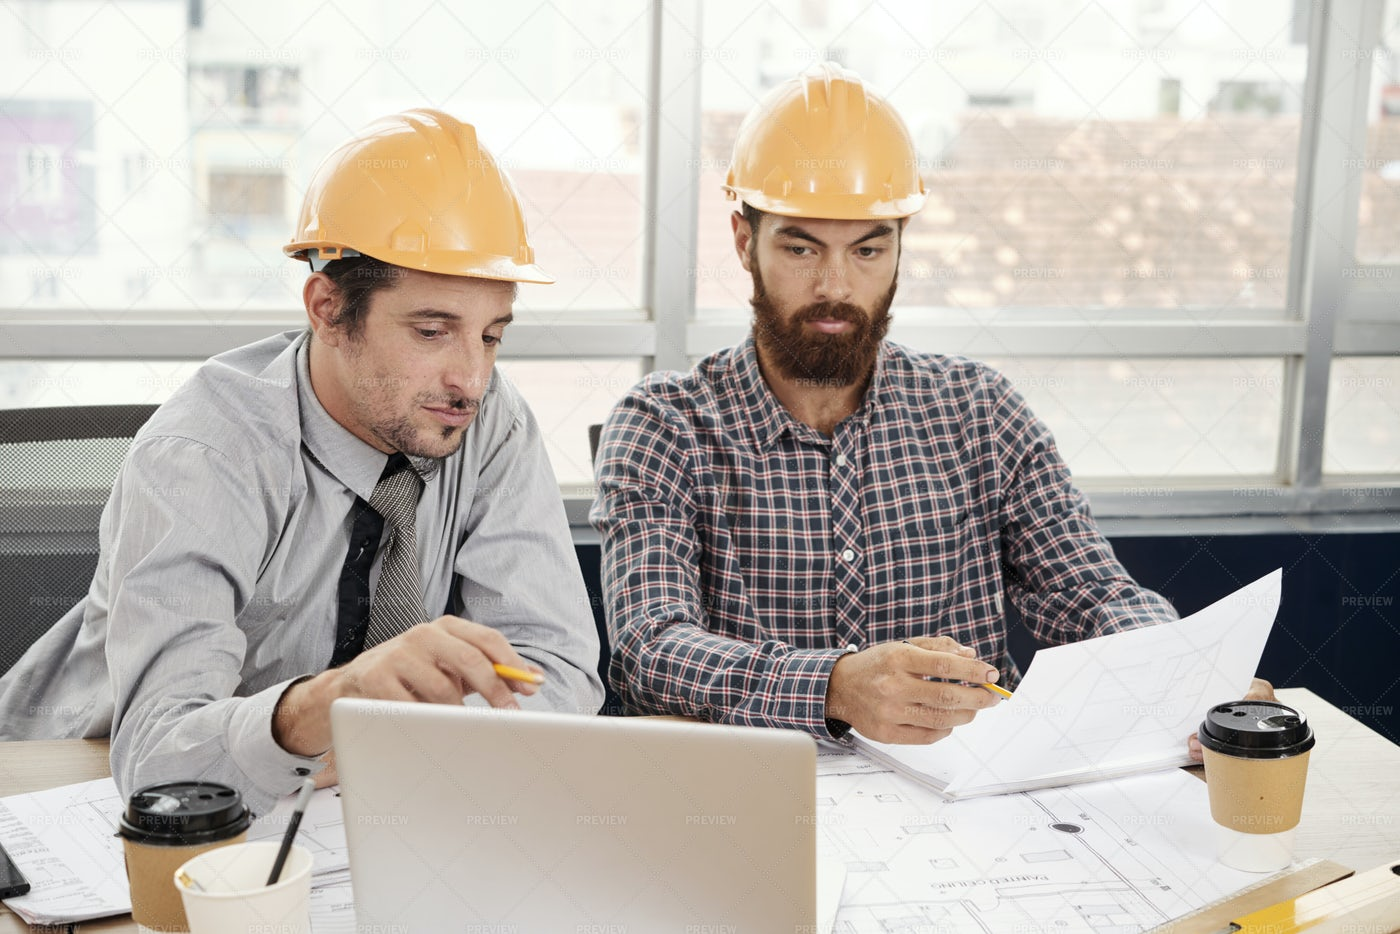 Engineering Working On Project: Stock Photos